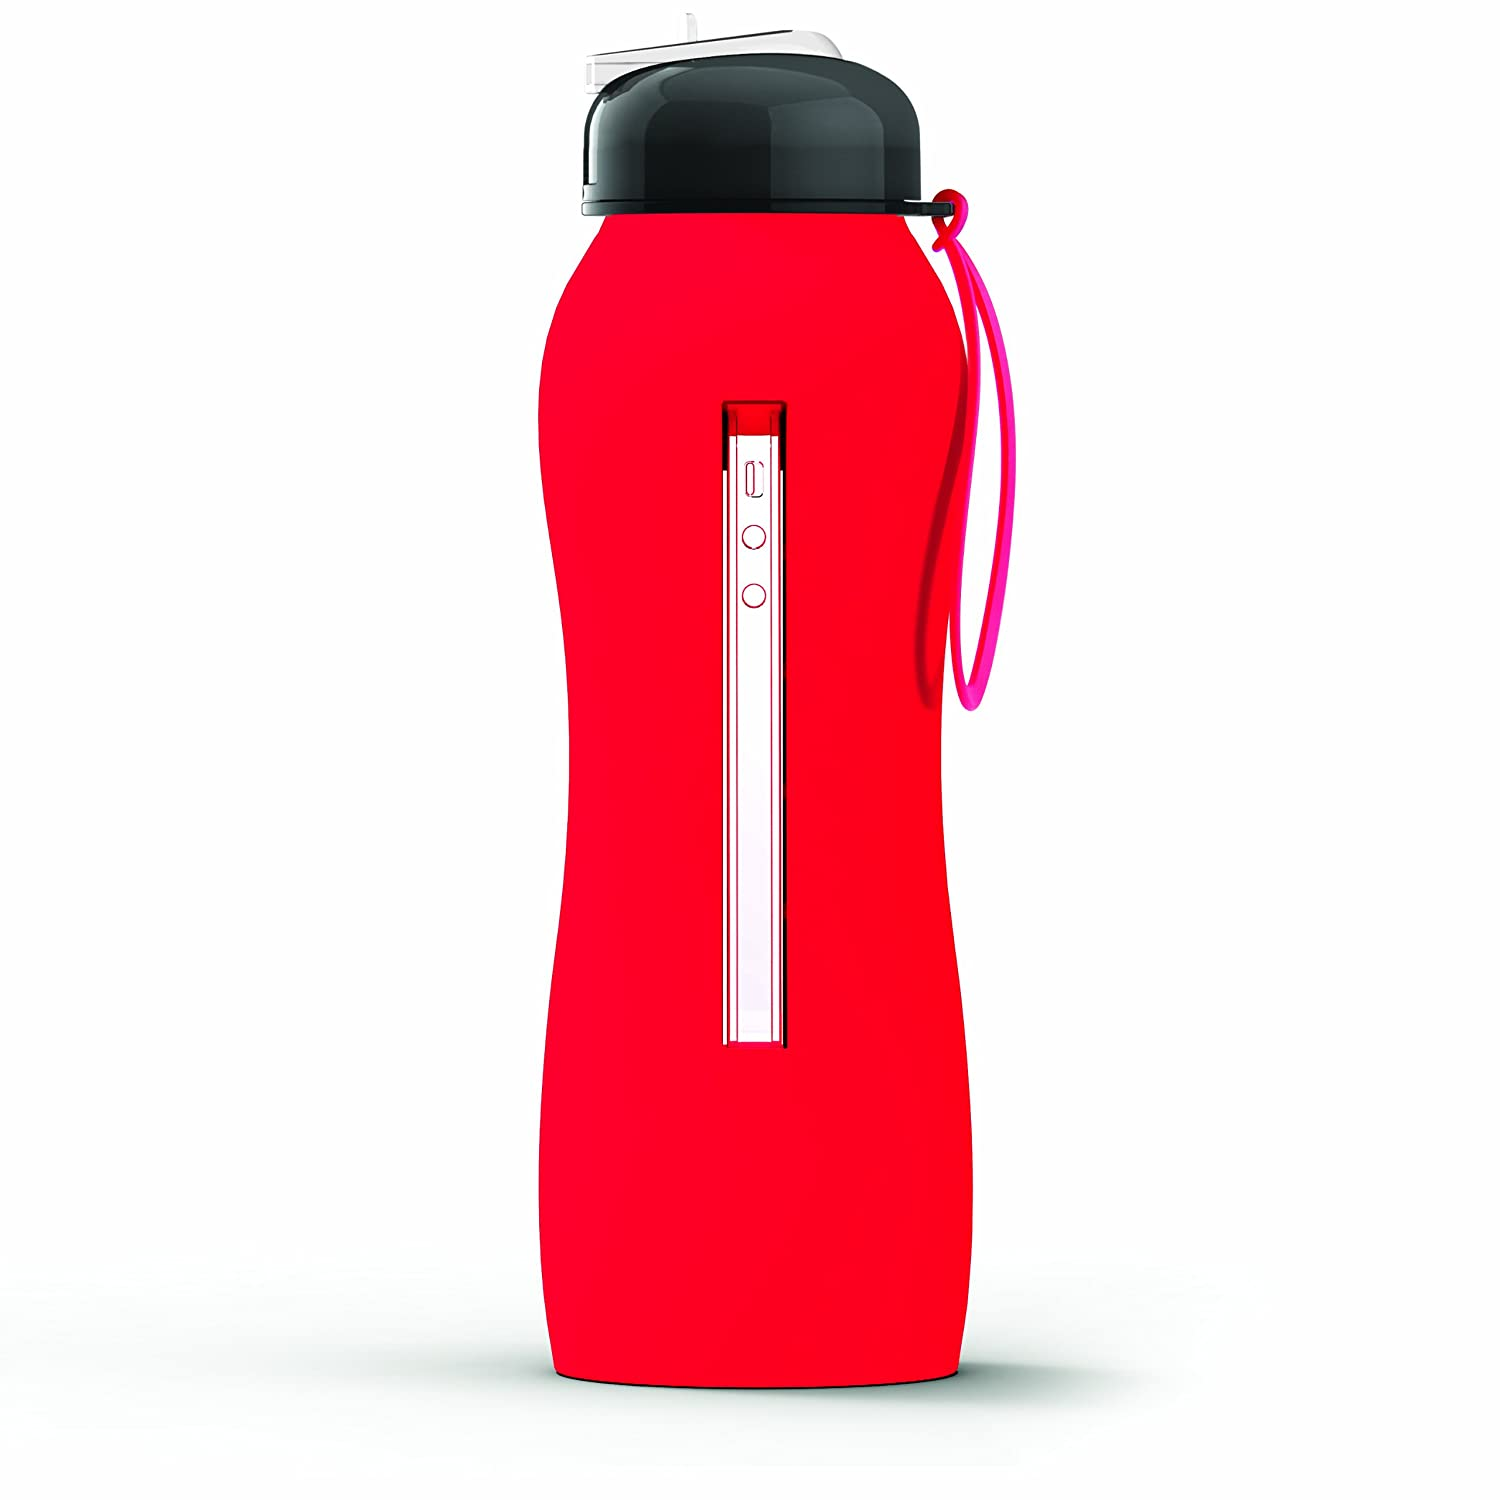 Amazon.com Asobu The Beat Silicone Hydra Bottle with Sport Lid Red Kitchen u0026 Dining  sc 1 st  Amazon.com & Amazon.com: Asobu The Beat Silicone Hydra Bottle with Sport Lid Red ...